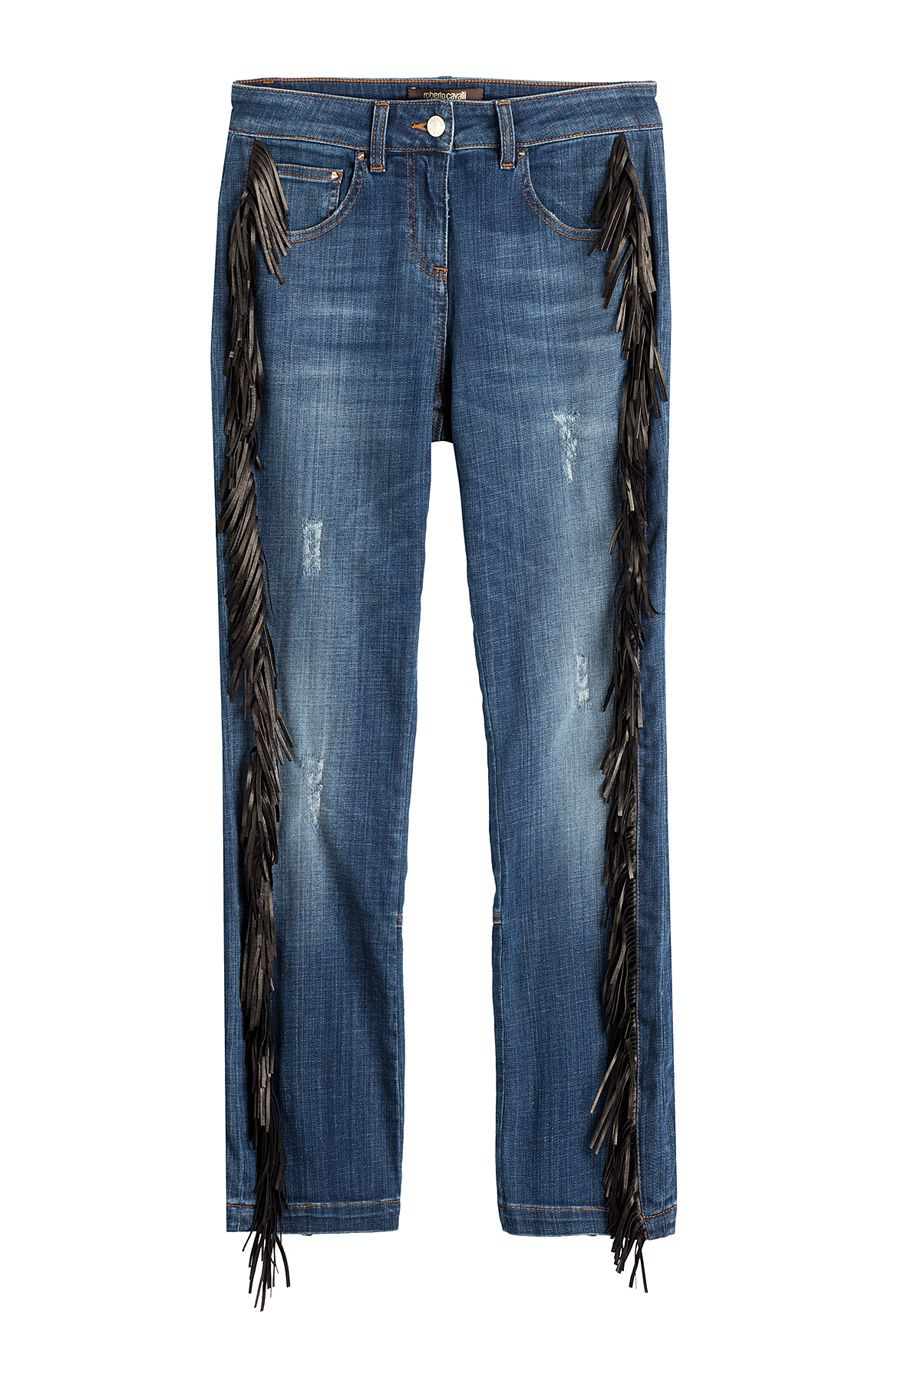 454819adeb ROBERTO CAVALLI Straight Jeans With Leather Fringe.  robertocavalli  cloth   straight leg